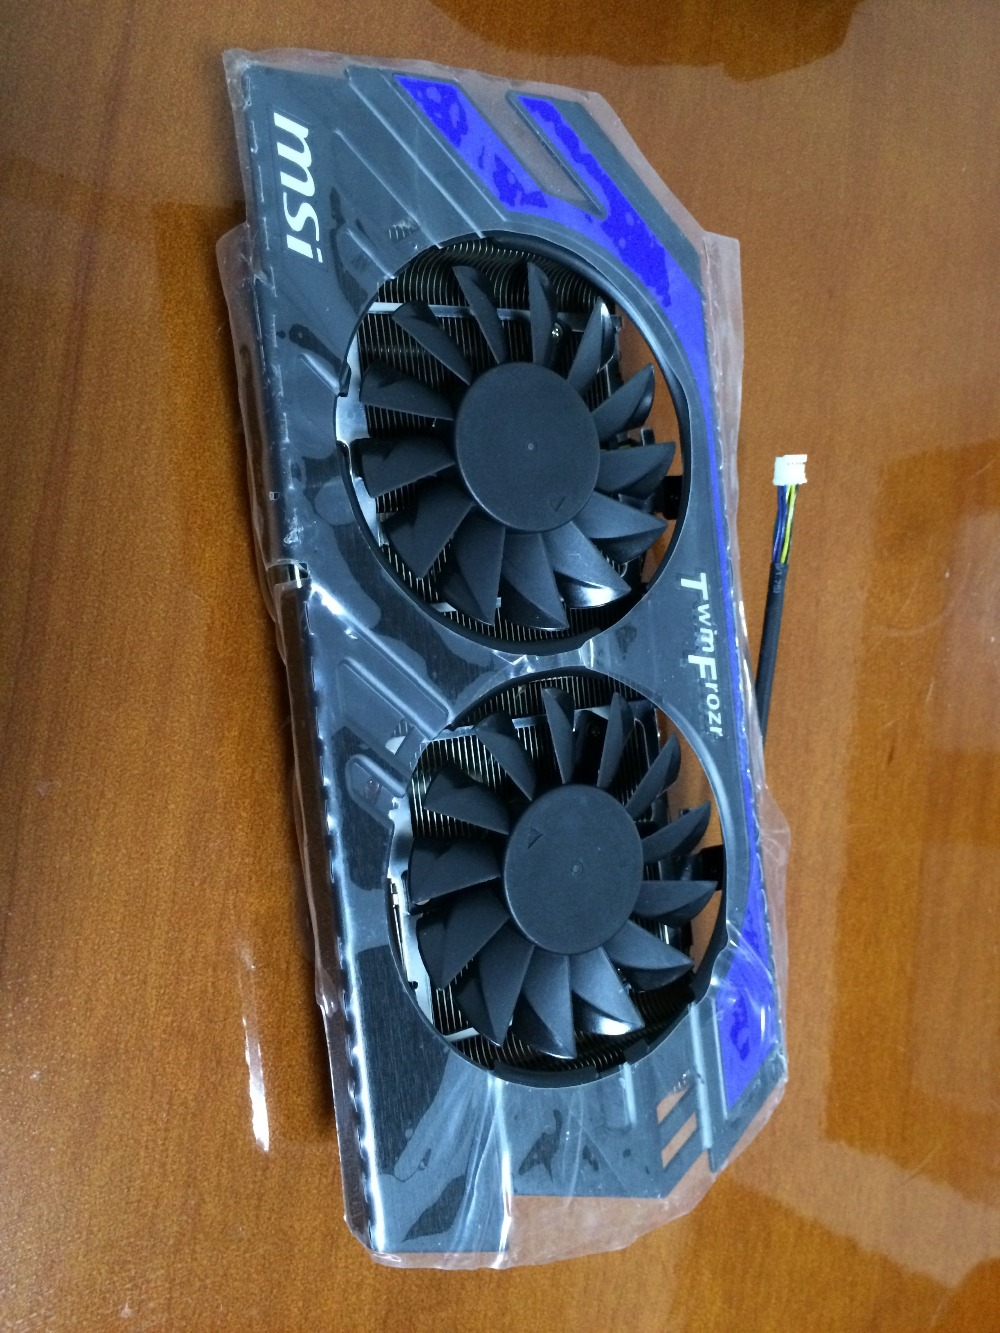 New Original MSI HD7850 GTX750Ti GTX660 R9 370 7870 graphics cooler cooling fan pitch 4.3cm TwmFrozr dobule fans